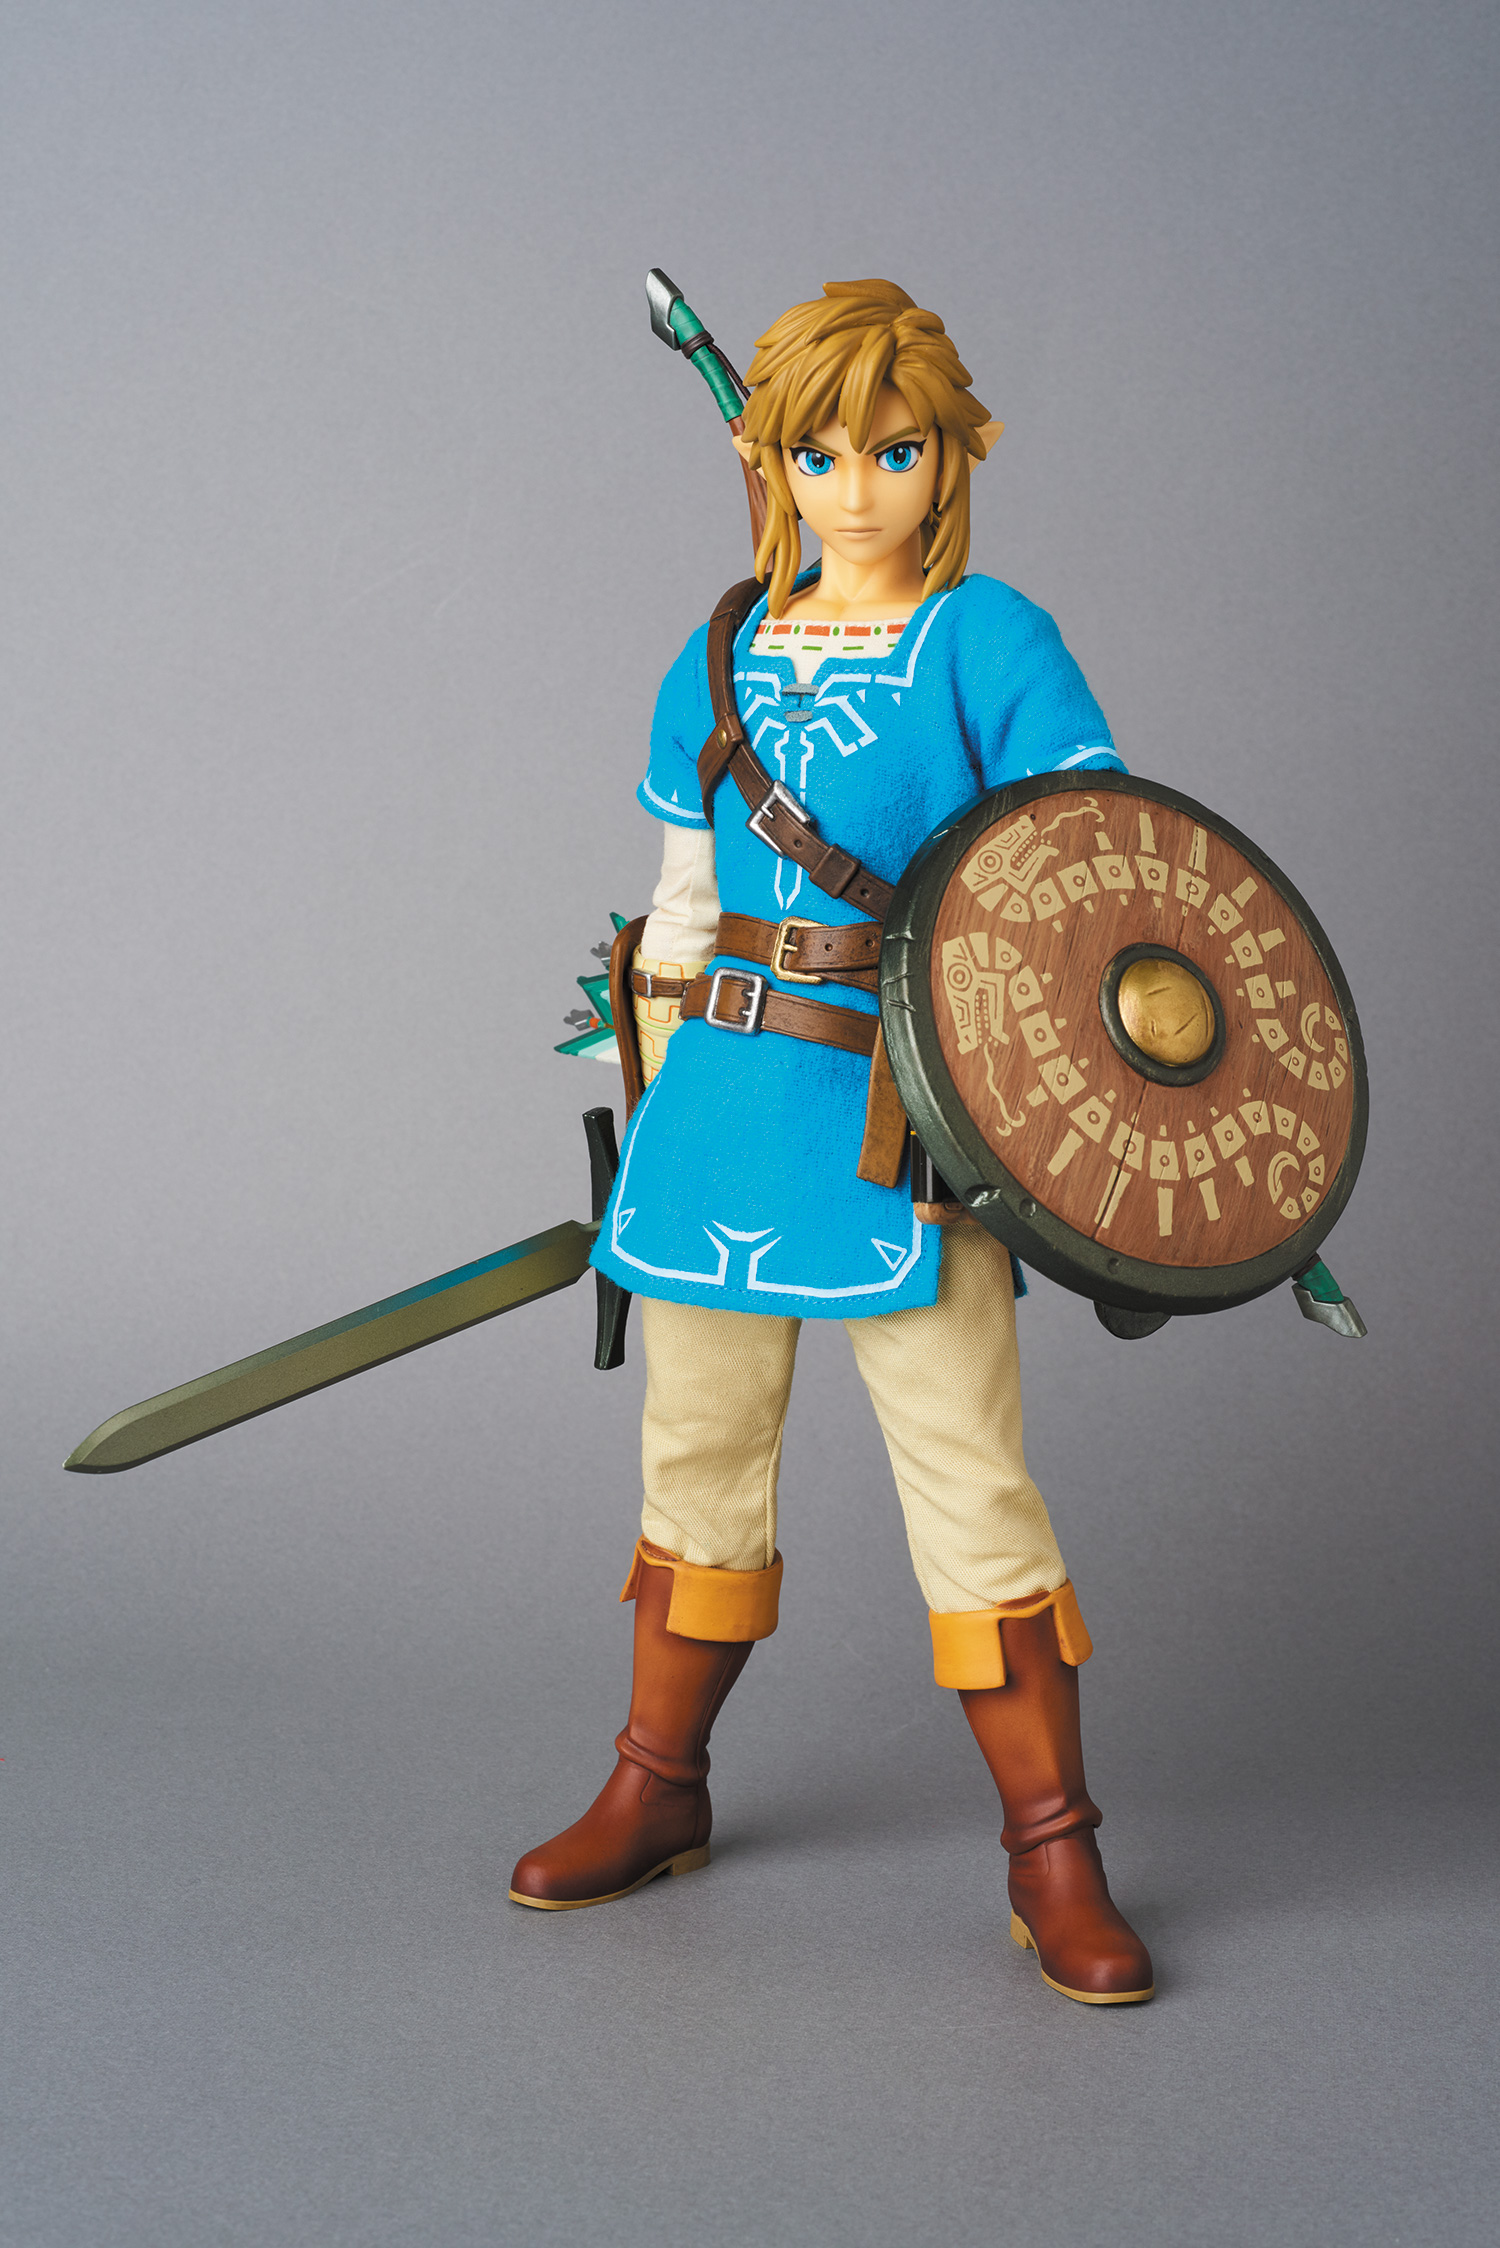 Now that is one fancy-looking Link figurine. The Real Action Heroes The Legend of Zelda 1/6 Scale Action Figure Link Breath of the Wild Ver. has released ... & Real Action Heroes The Legend of Zelda 1/6 Scale Action Figure: Link ...